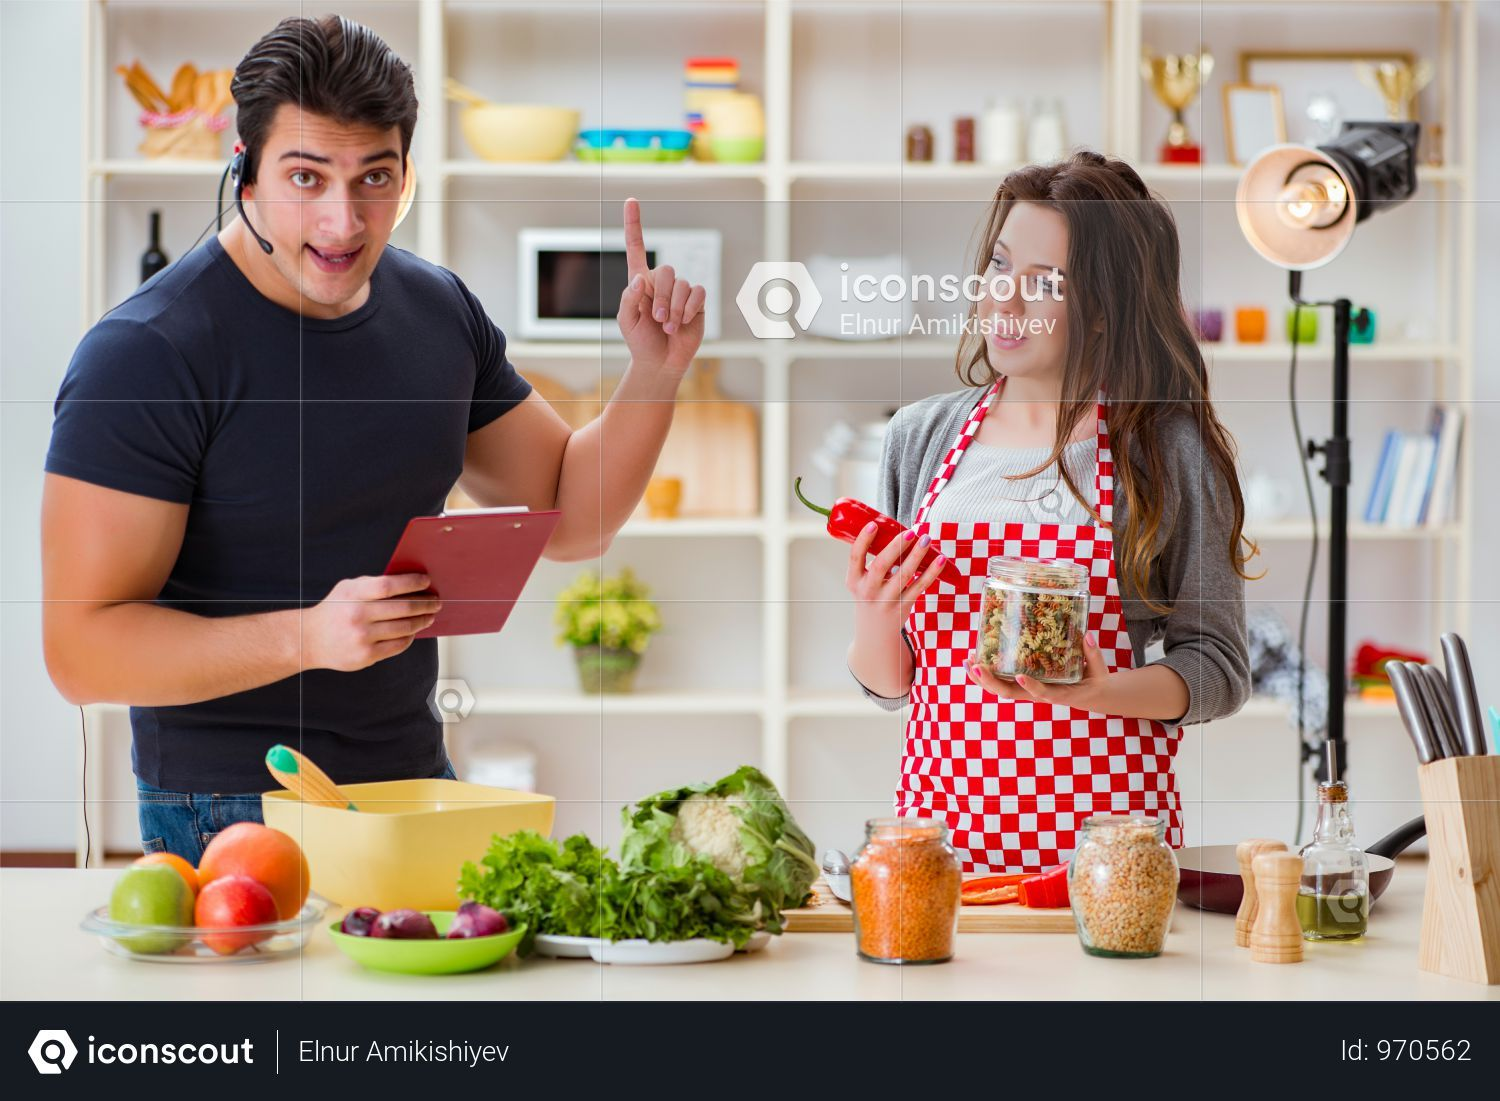 Premium Food Cooking Tv Show In The Studio Photo Download In Png Jpg Format Cooking Tv Premium Food Cooking Recipes